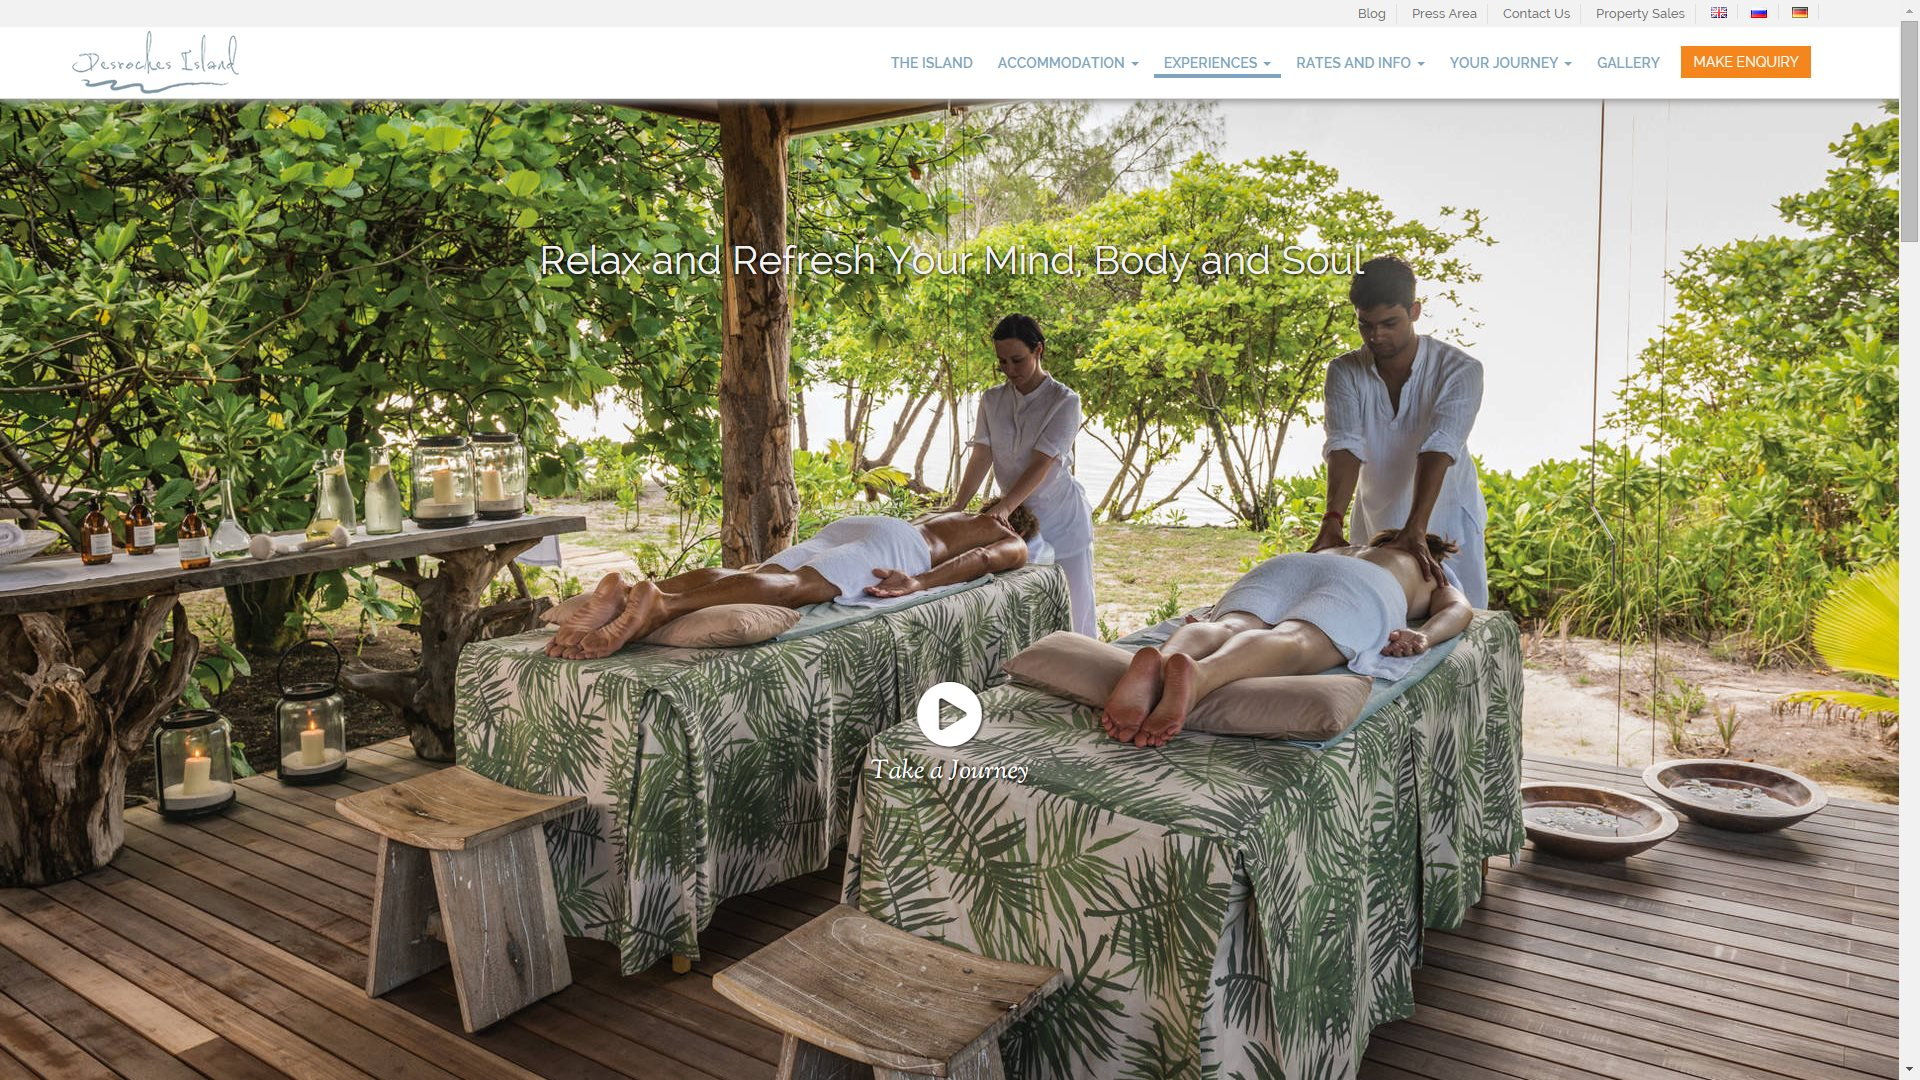 Desroches Island - Escape Spa Page